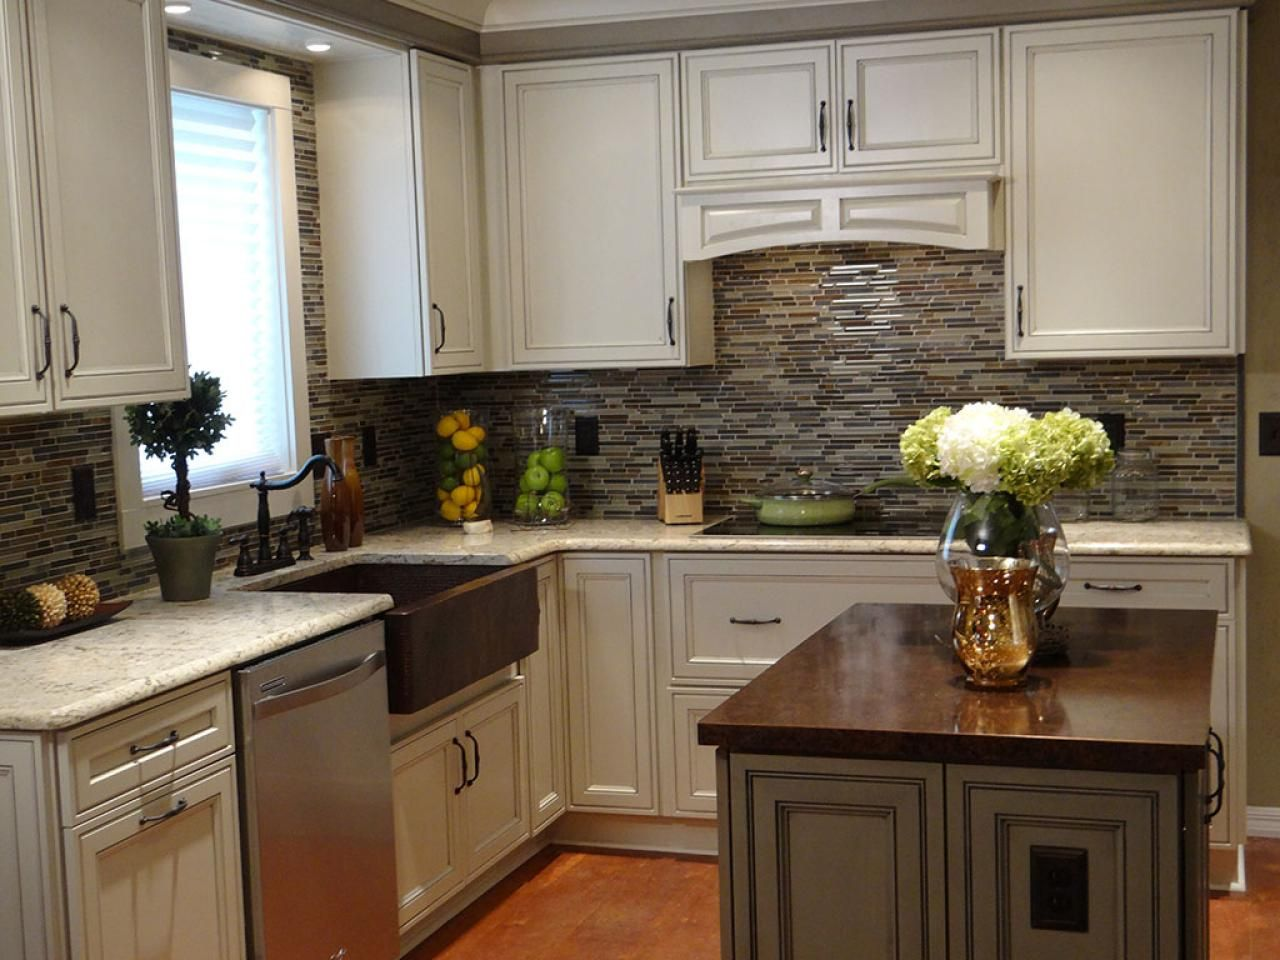 20 small kitchen makeovers by hgtv hosts small kitchen Kitchen self design